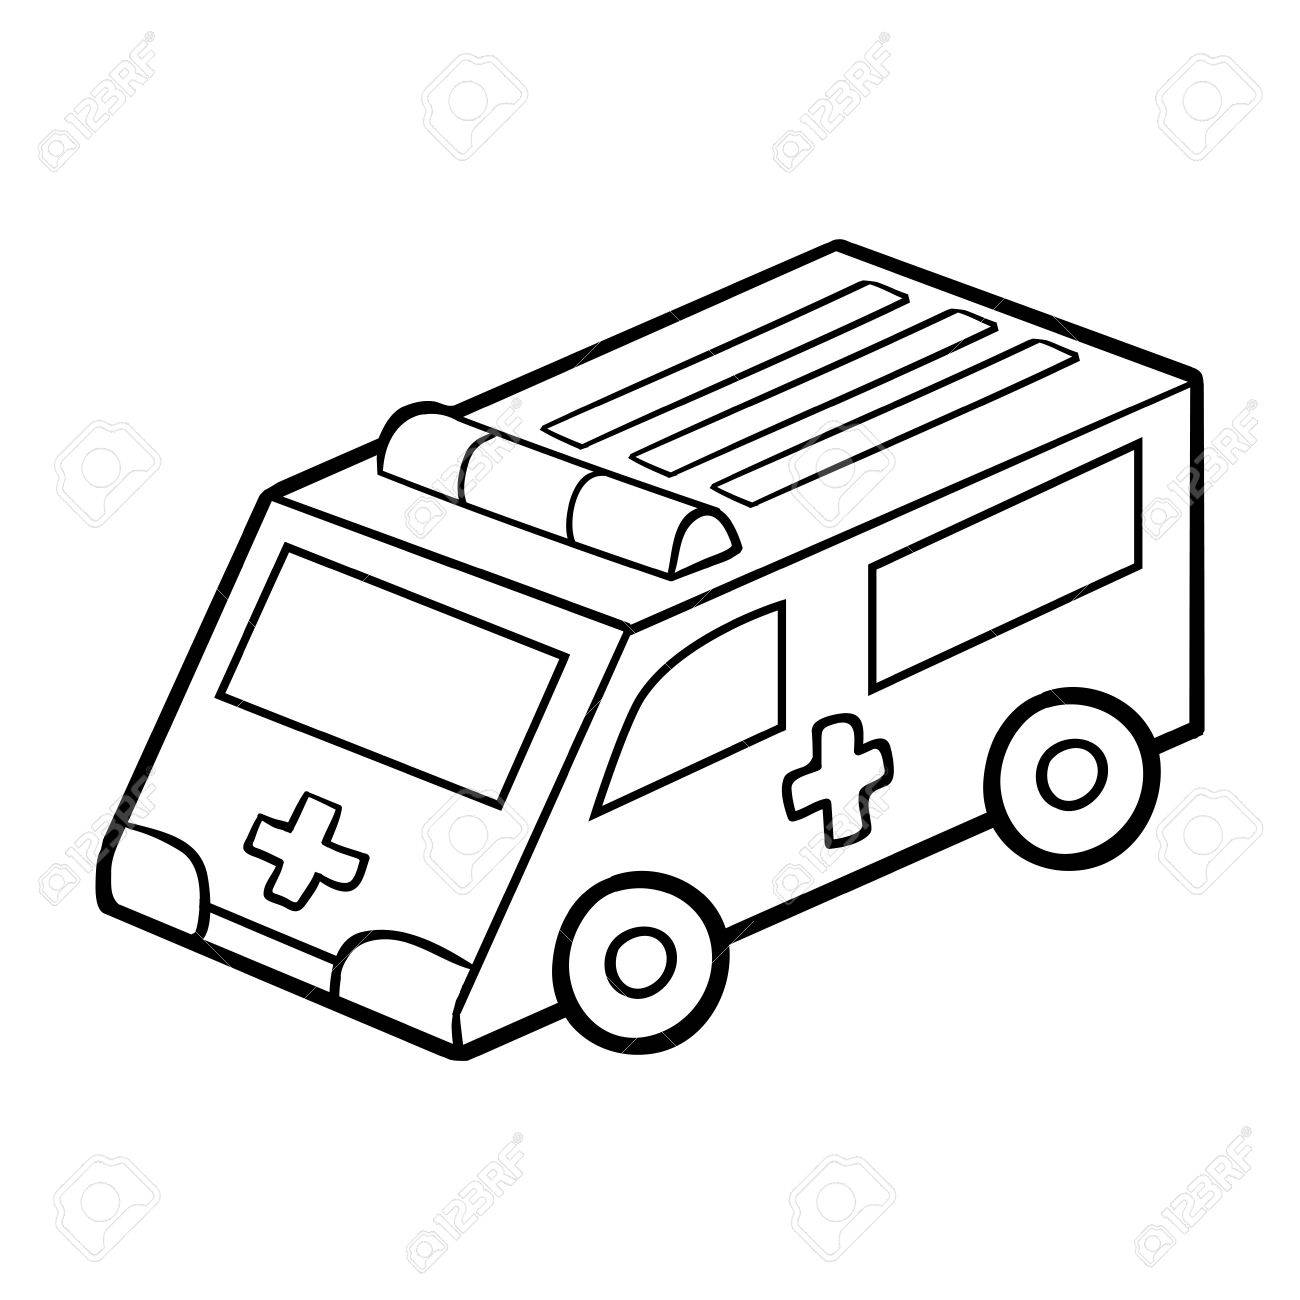 Coloring Book For Children Coloring Page Ambulance Car Royalty